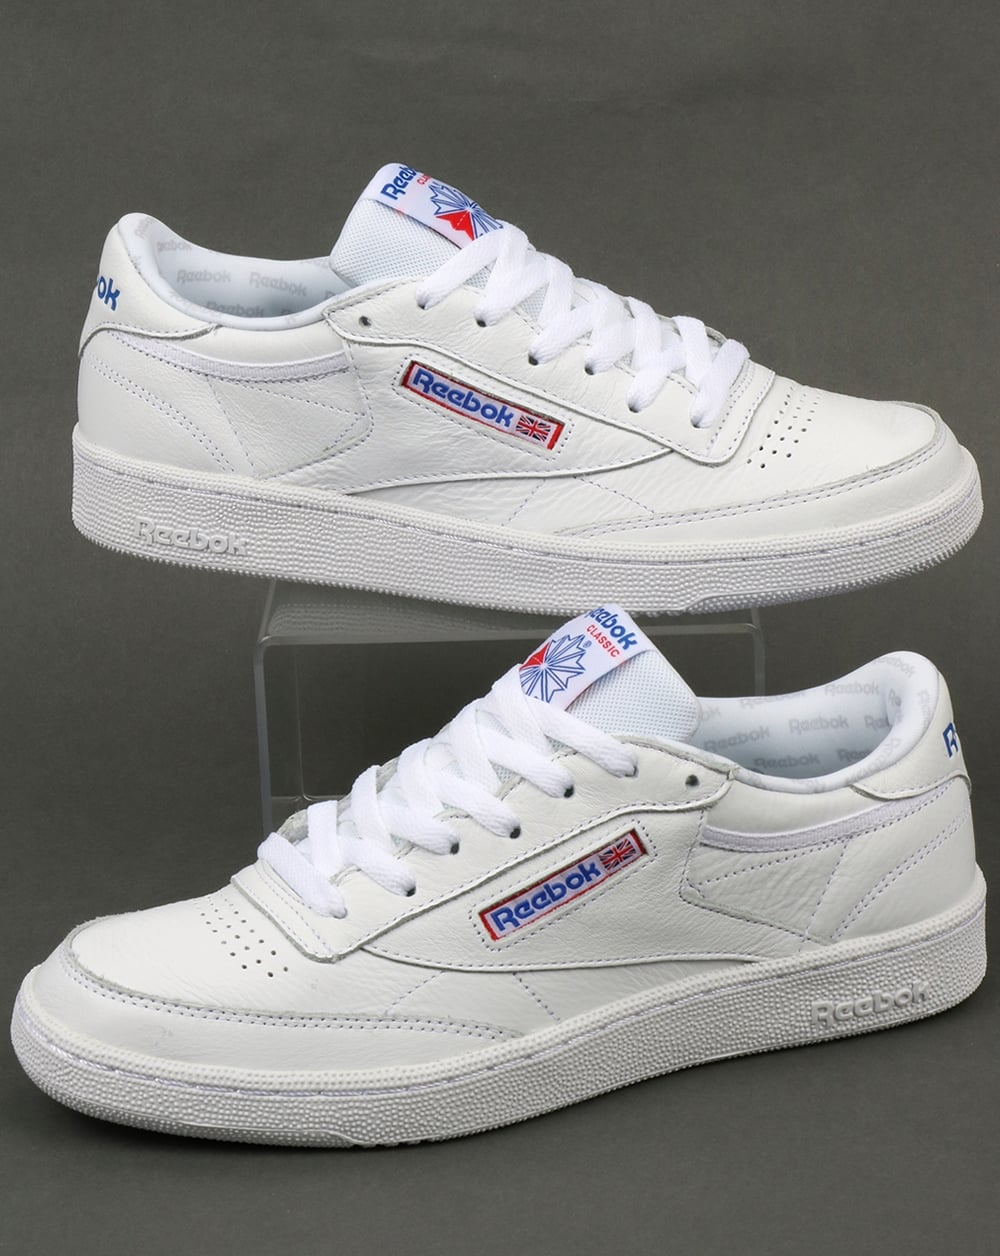 5f08a211e79 Reebok Reebok Club C 85 SO Trainers White Solid Grey